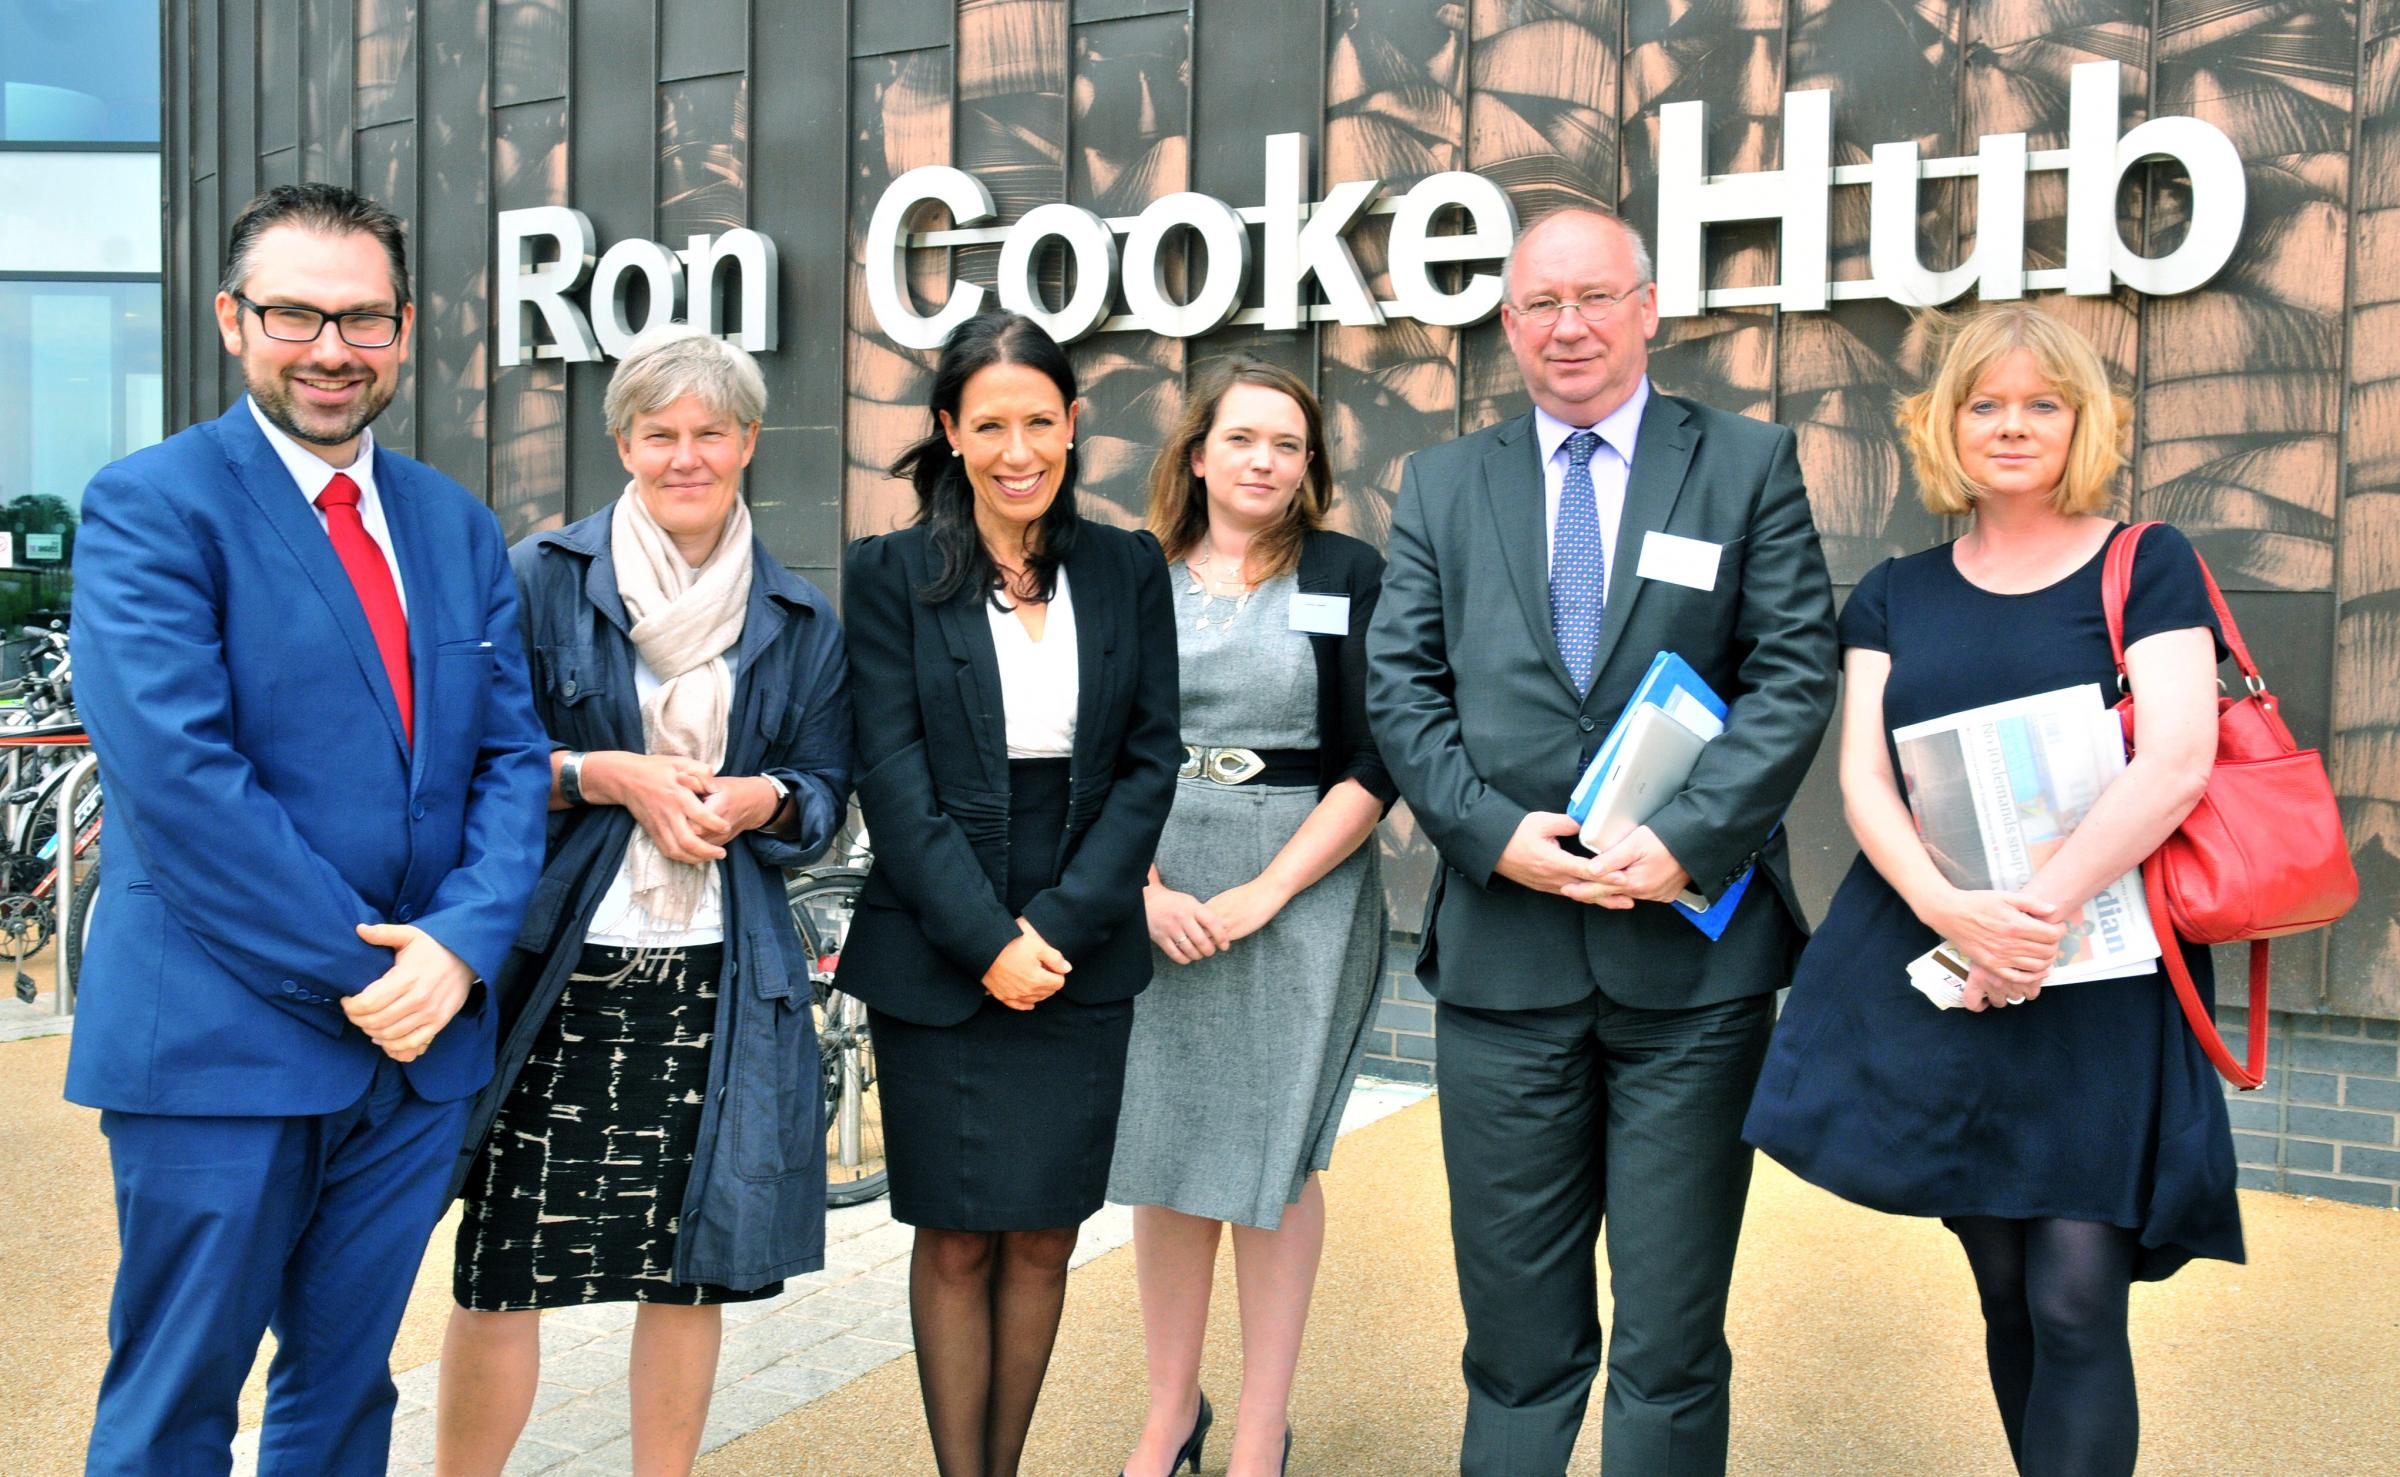 From left, Cllr James Alexander, Kate Green MP, Debbie Abrahams MP, Sophie Jowett, Henk Kool, vice mayor of social affairs,employment and economy in the Netherlands, and professor Kate Pickett of York University